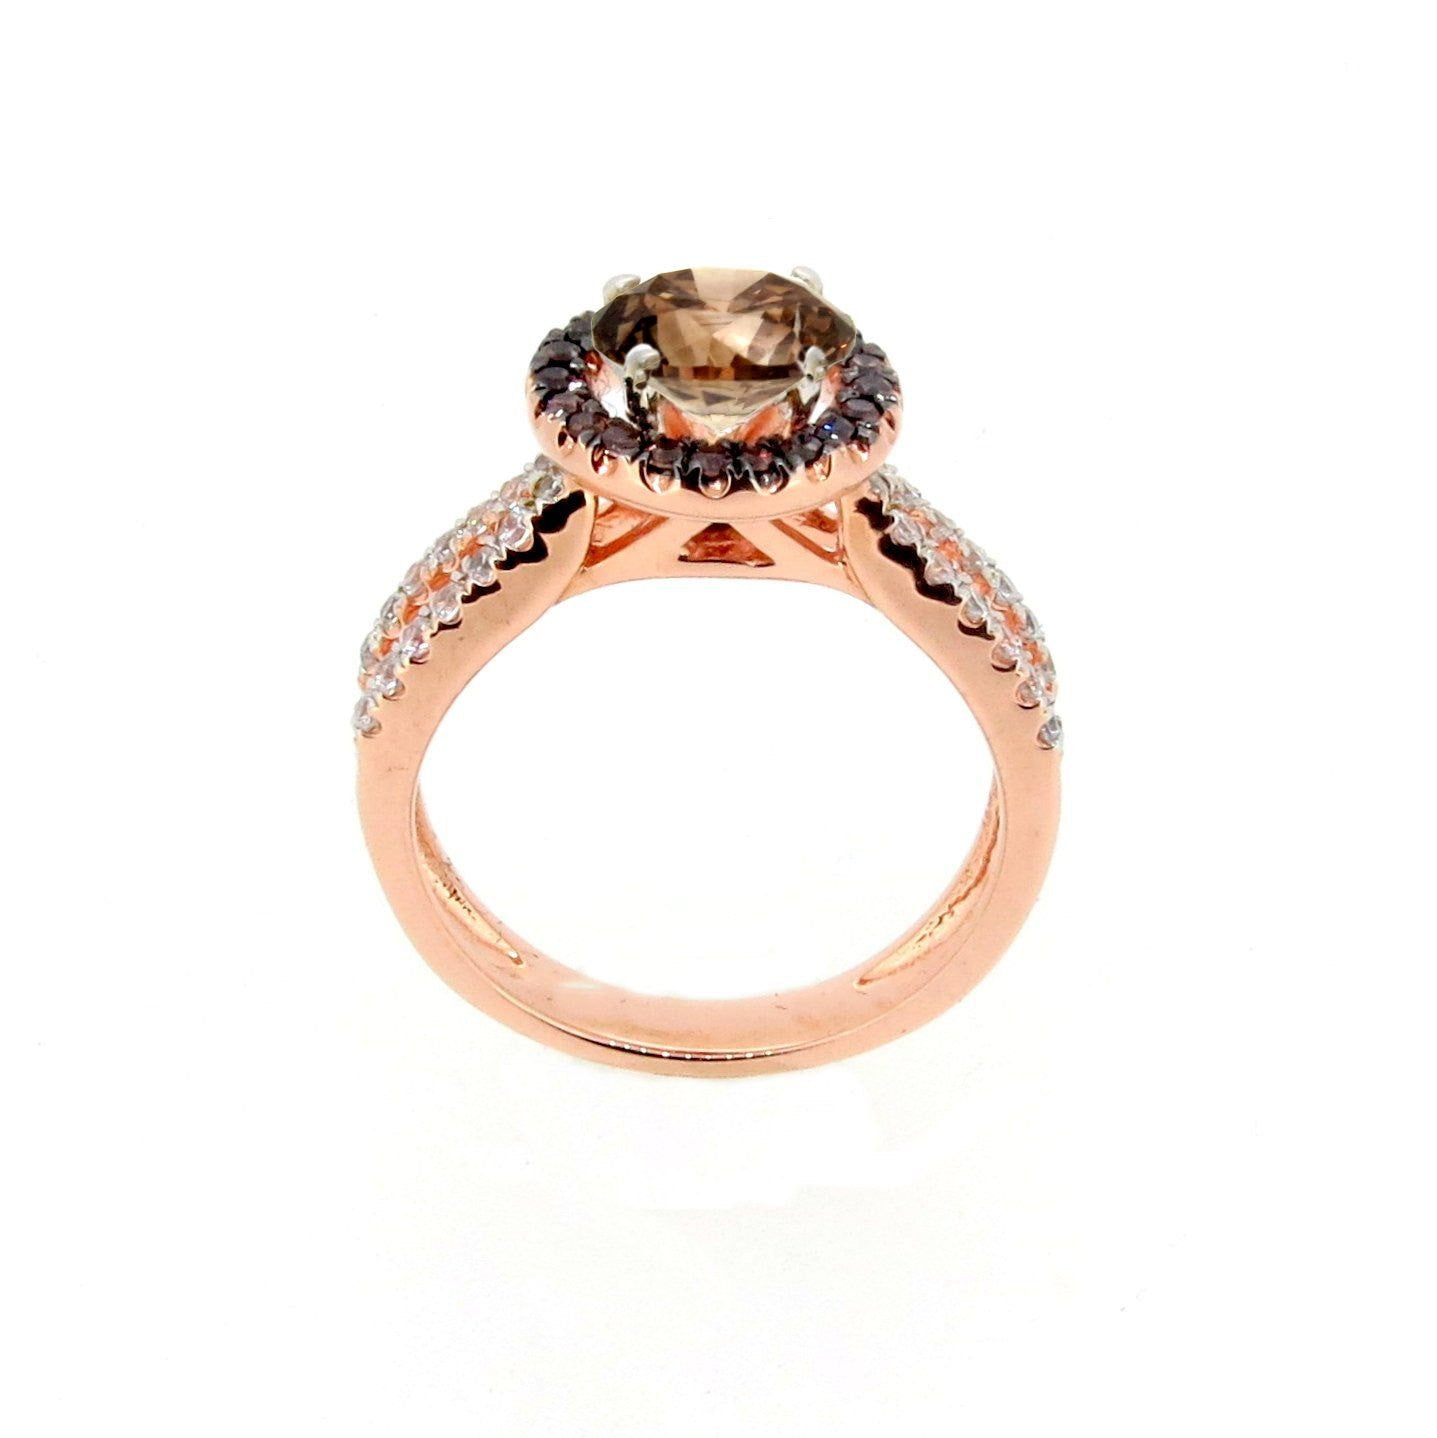 1 Carat Brown Diamond Floating Halo Rose Gold, White & Brown Diamond Engagement Ring, Split Shank, Anniversary Ring - BD94656